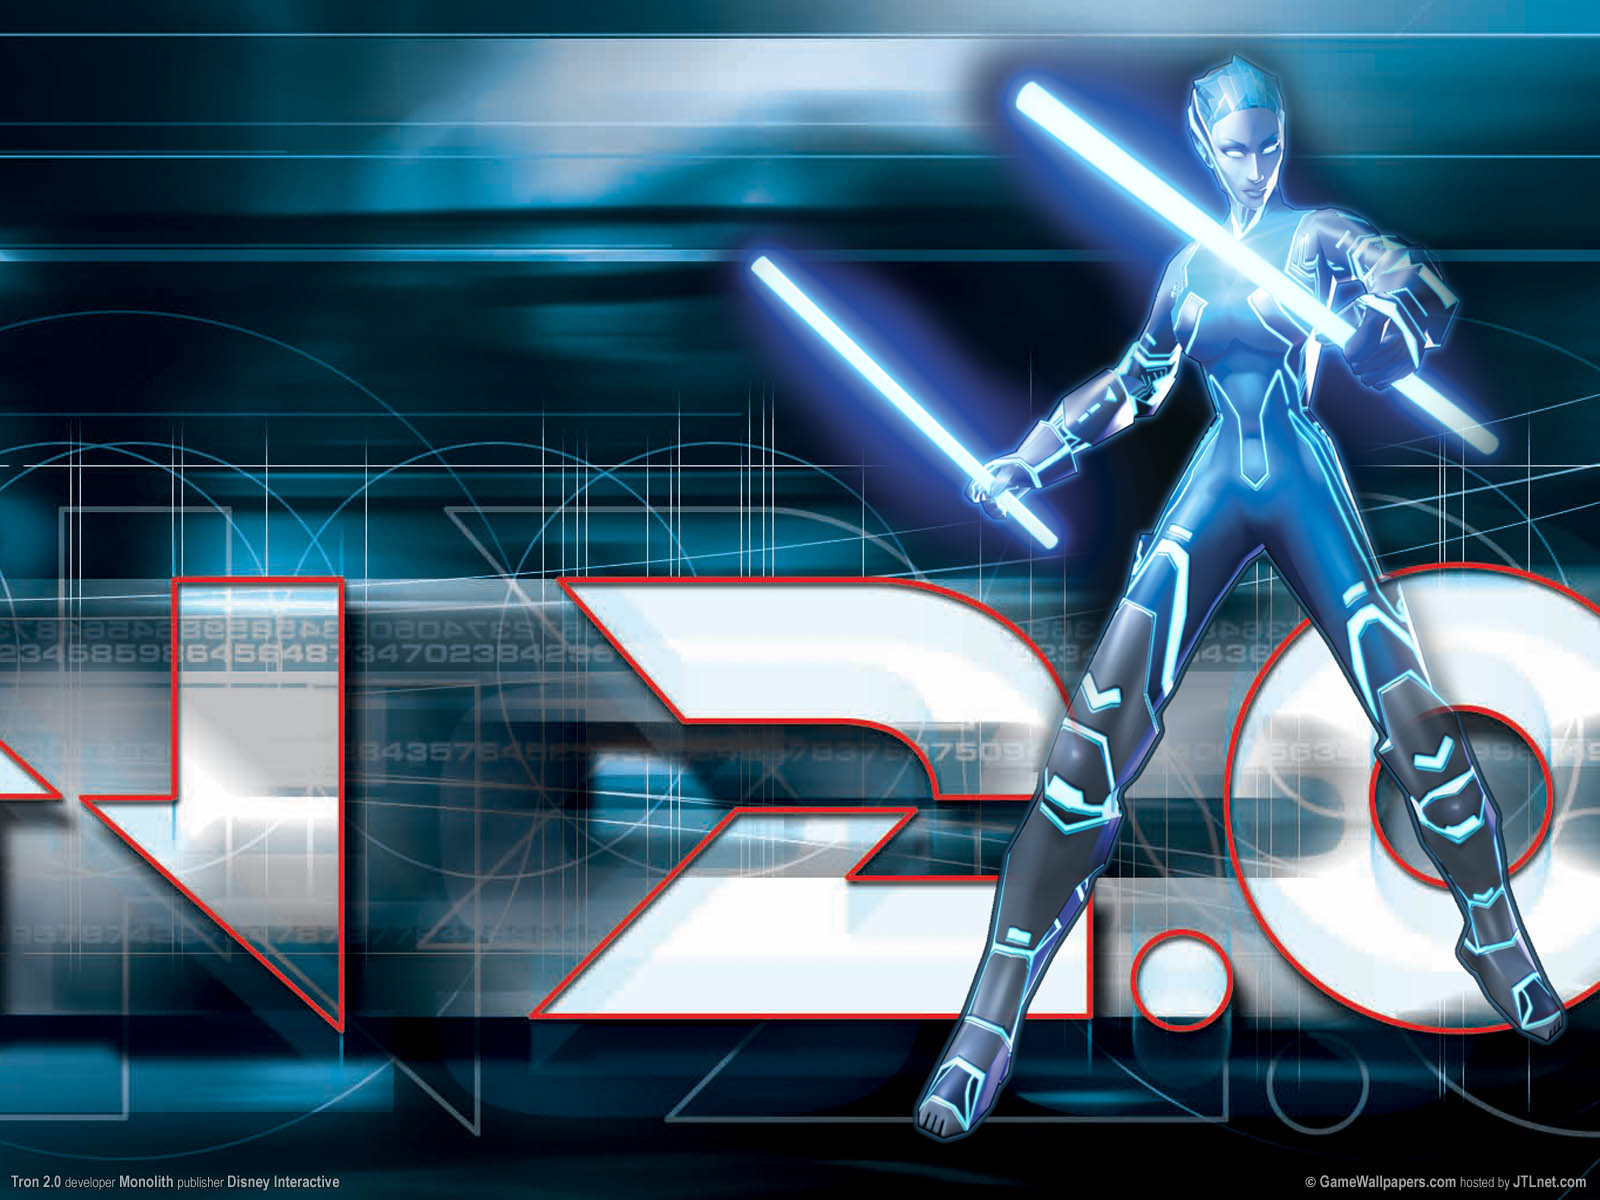 Tron 2.0 wallpaper 01 1600x1200